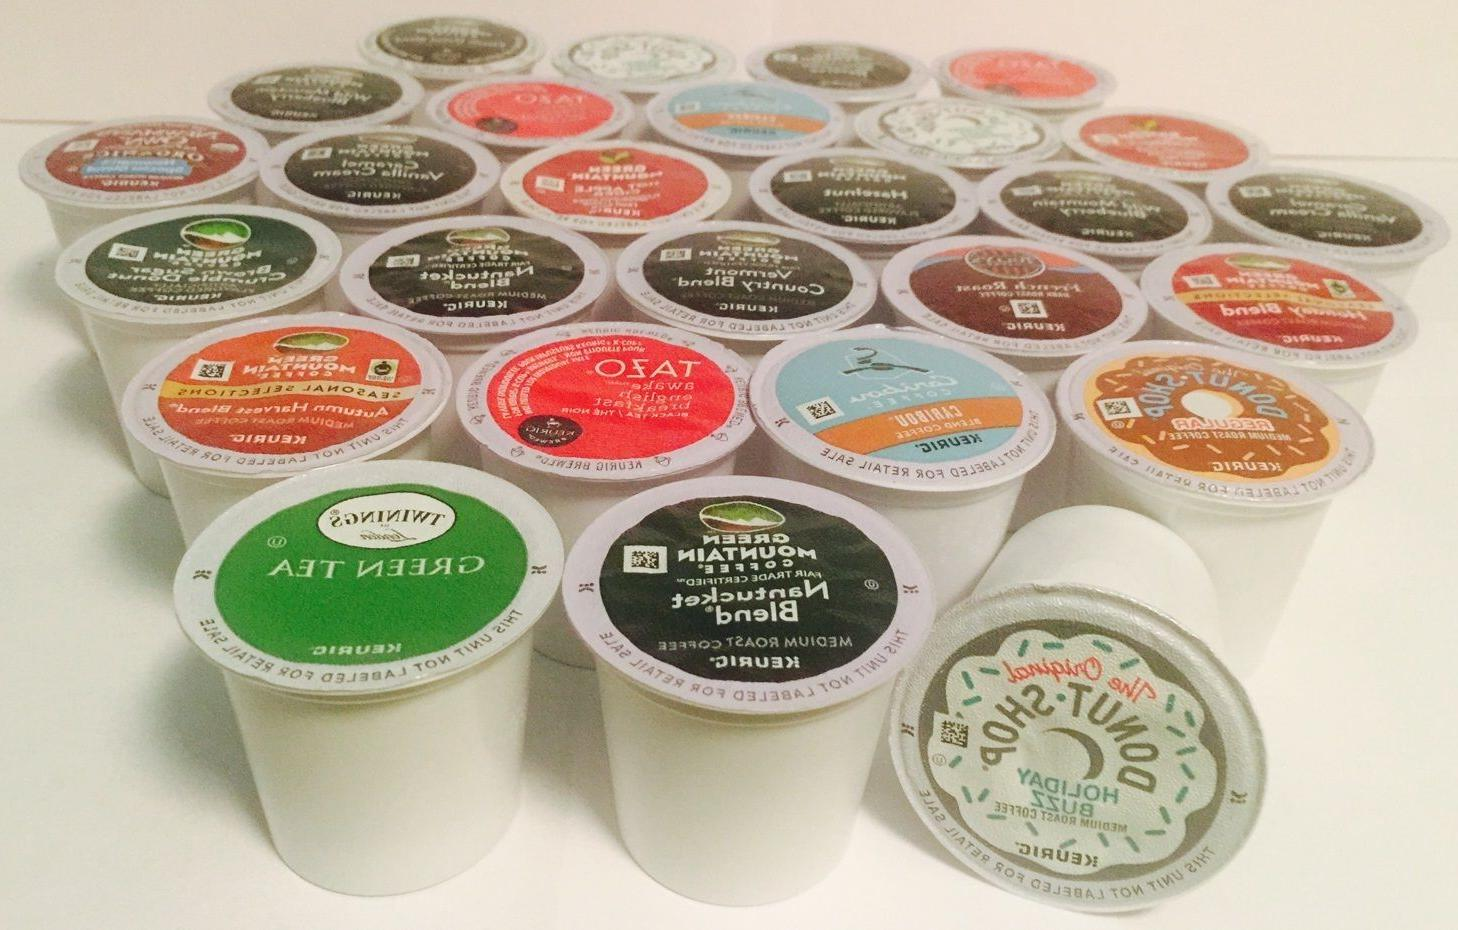 5 Keurig K-cups choose your flavor -  Variety of 130 FLAVORS